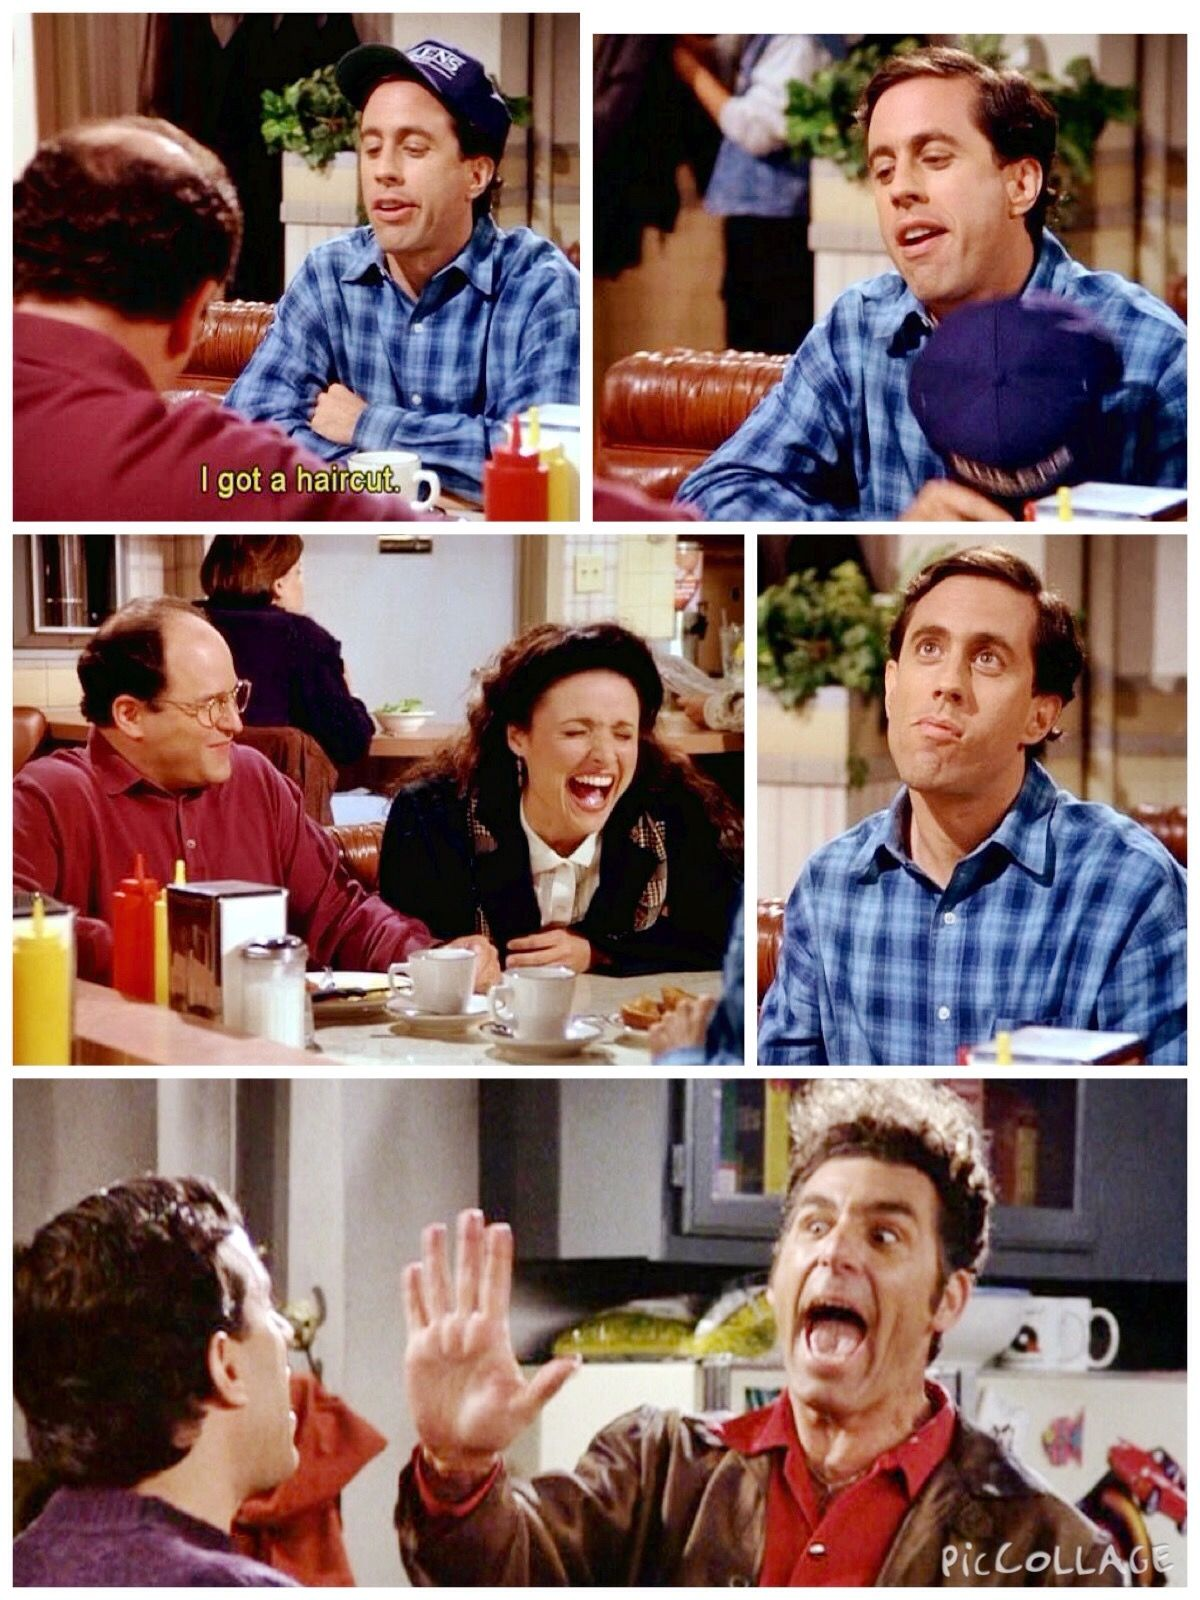 the barber jerry i got a haircut elaine hahaha you look you look like you re five years old